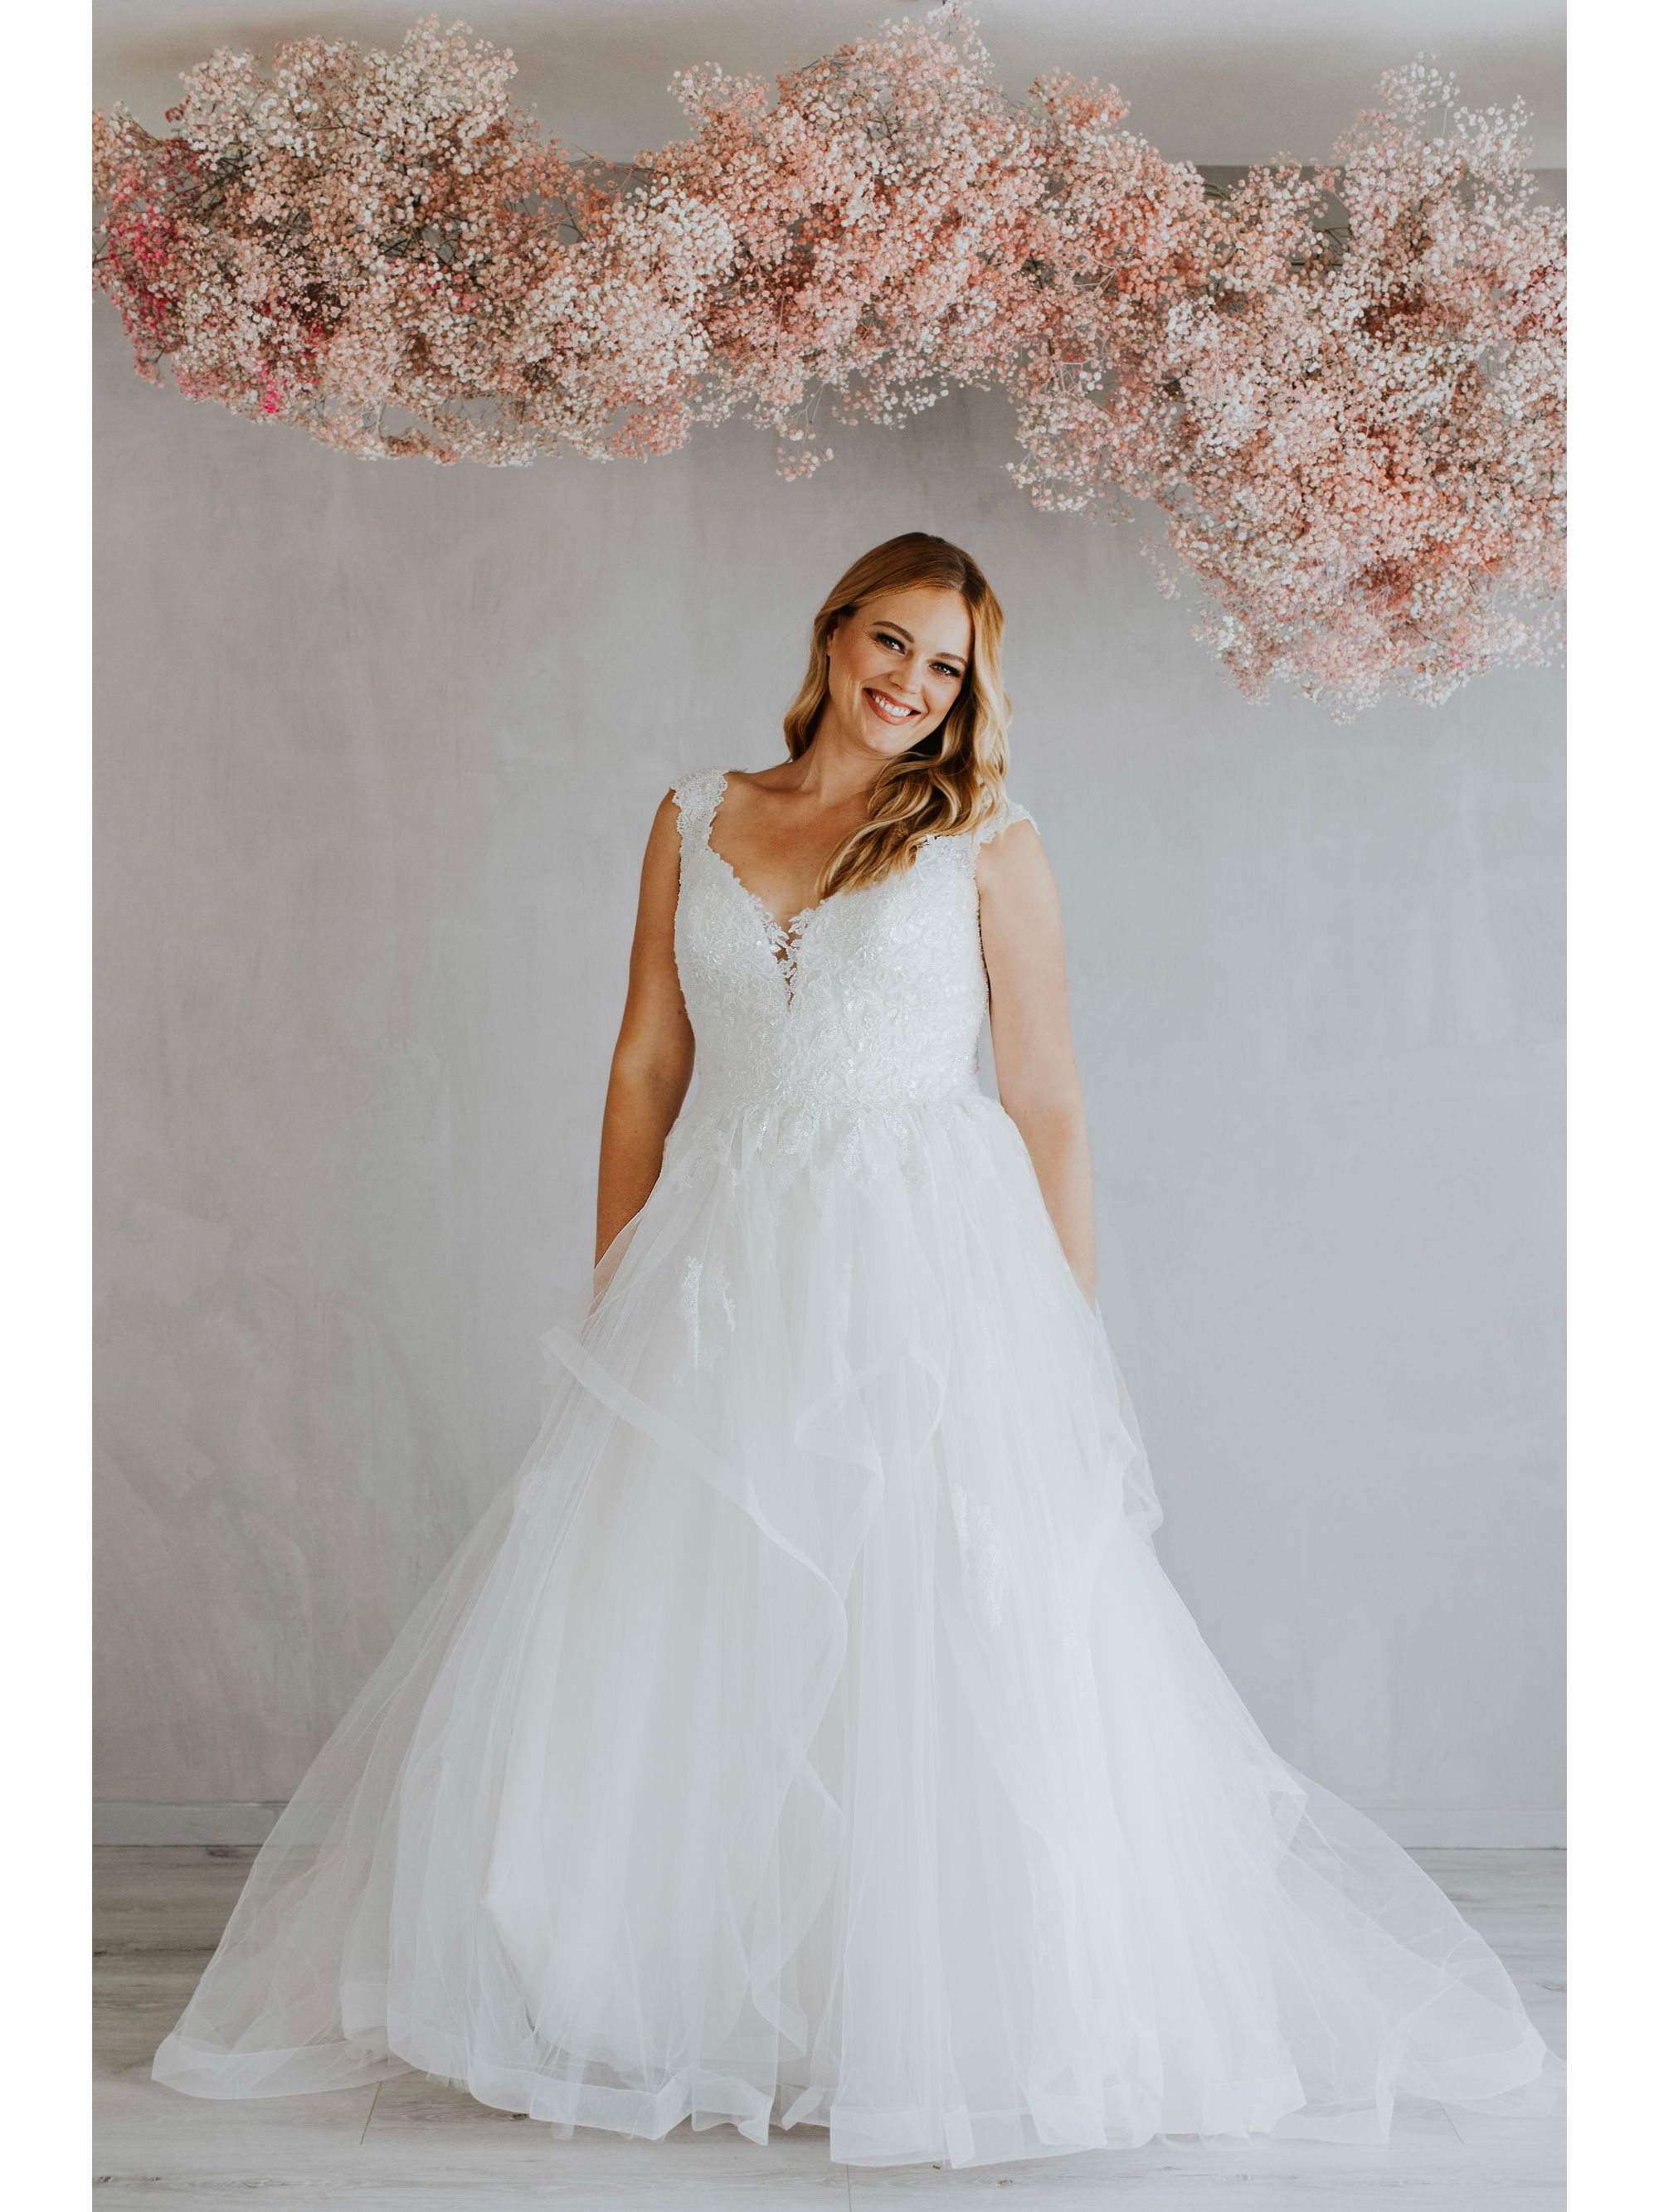 Bridal Gown-Stunning Wedding Gown,Gorgeous Wedding,Gown,Lovely Wedding Gown.Tulle Ballgowns,Soft Tulle Layers,Hand Placed Lace Appliques,Sexy Wedding Gown,Bridal Gown, Wedding Gown, Ballroom Wedding Gown, Lace Wedding Gown, Simple Wedding Gown, Royal Wedd